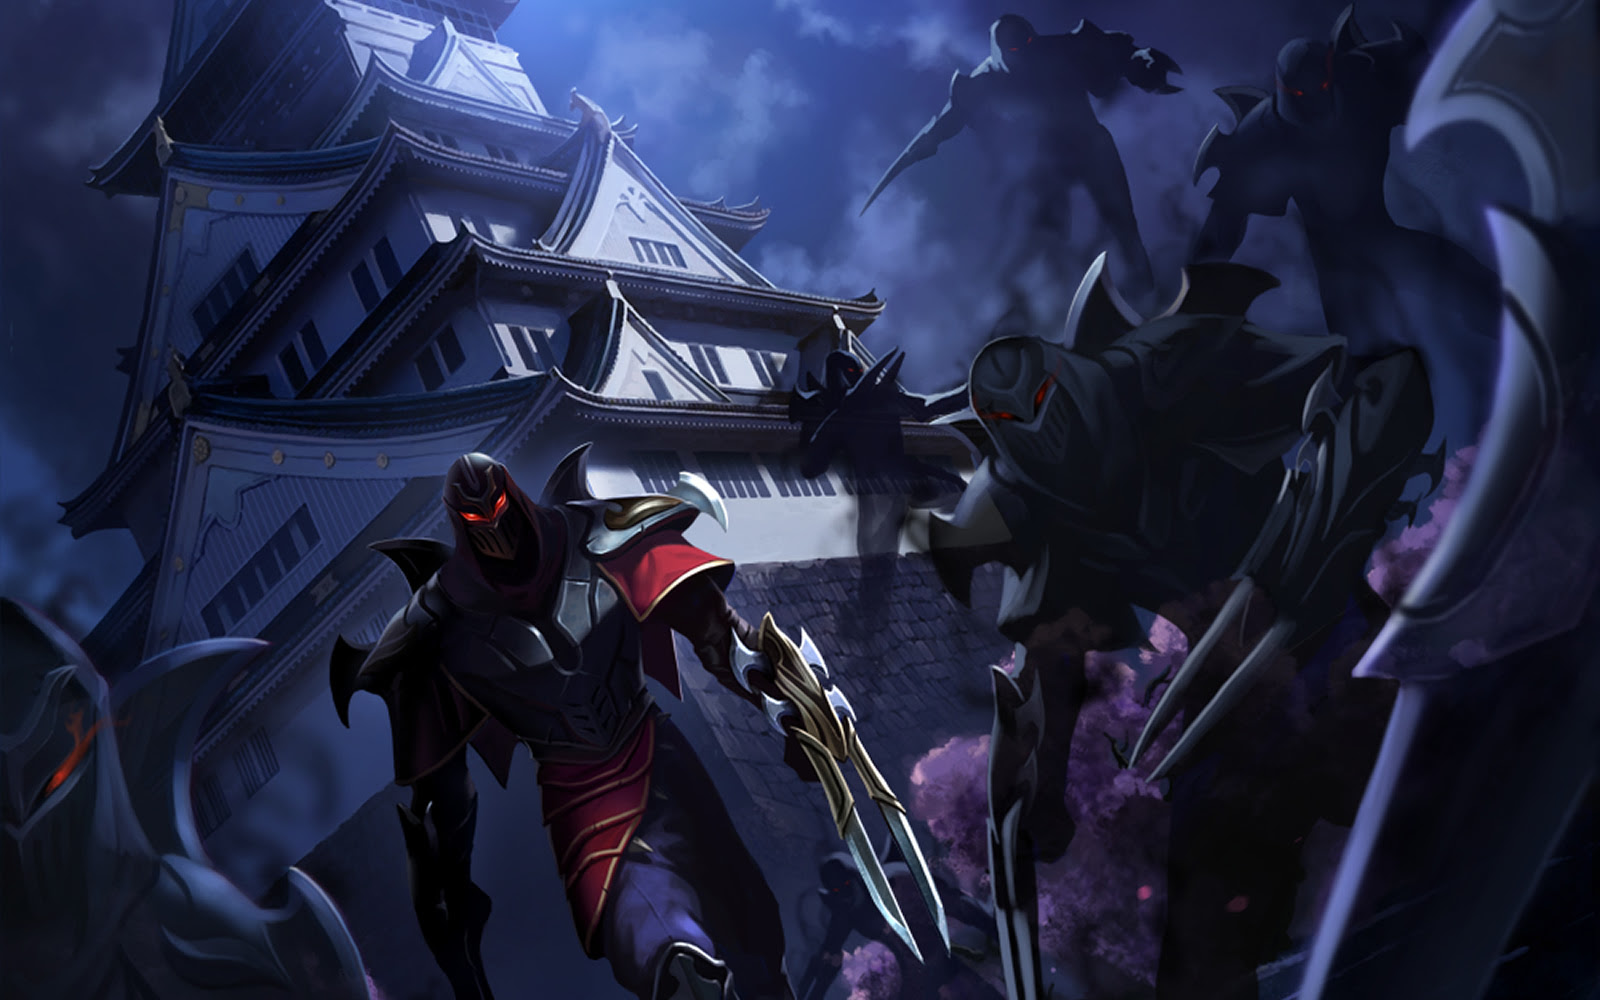 Zed Sneak Peek Wallpaper League Of Legends Wallpapers